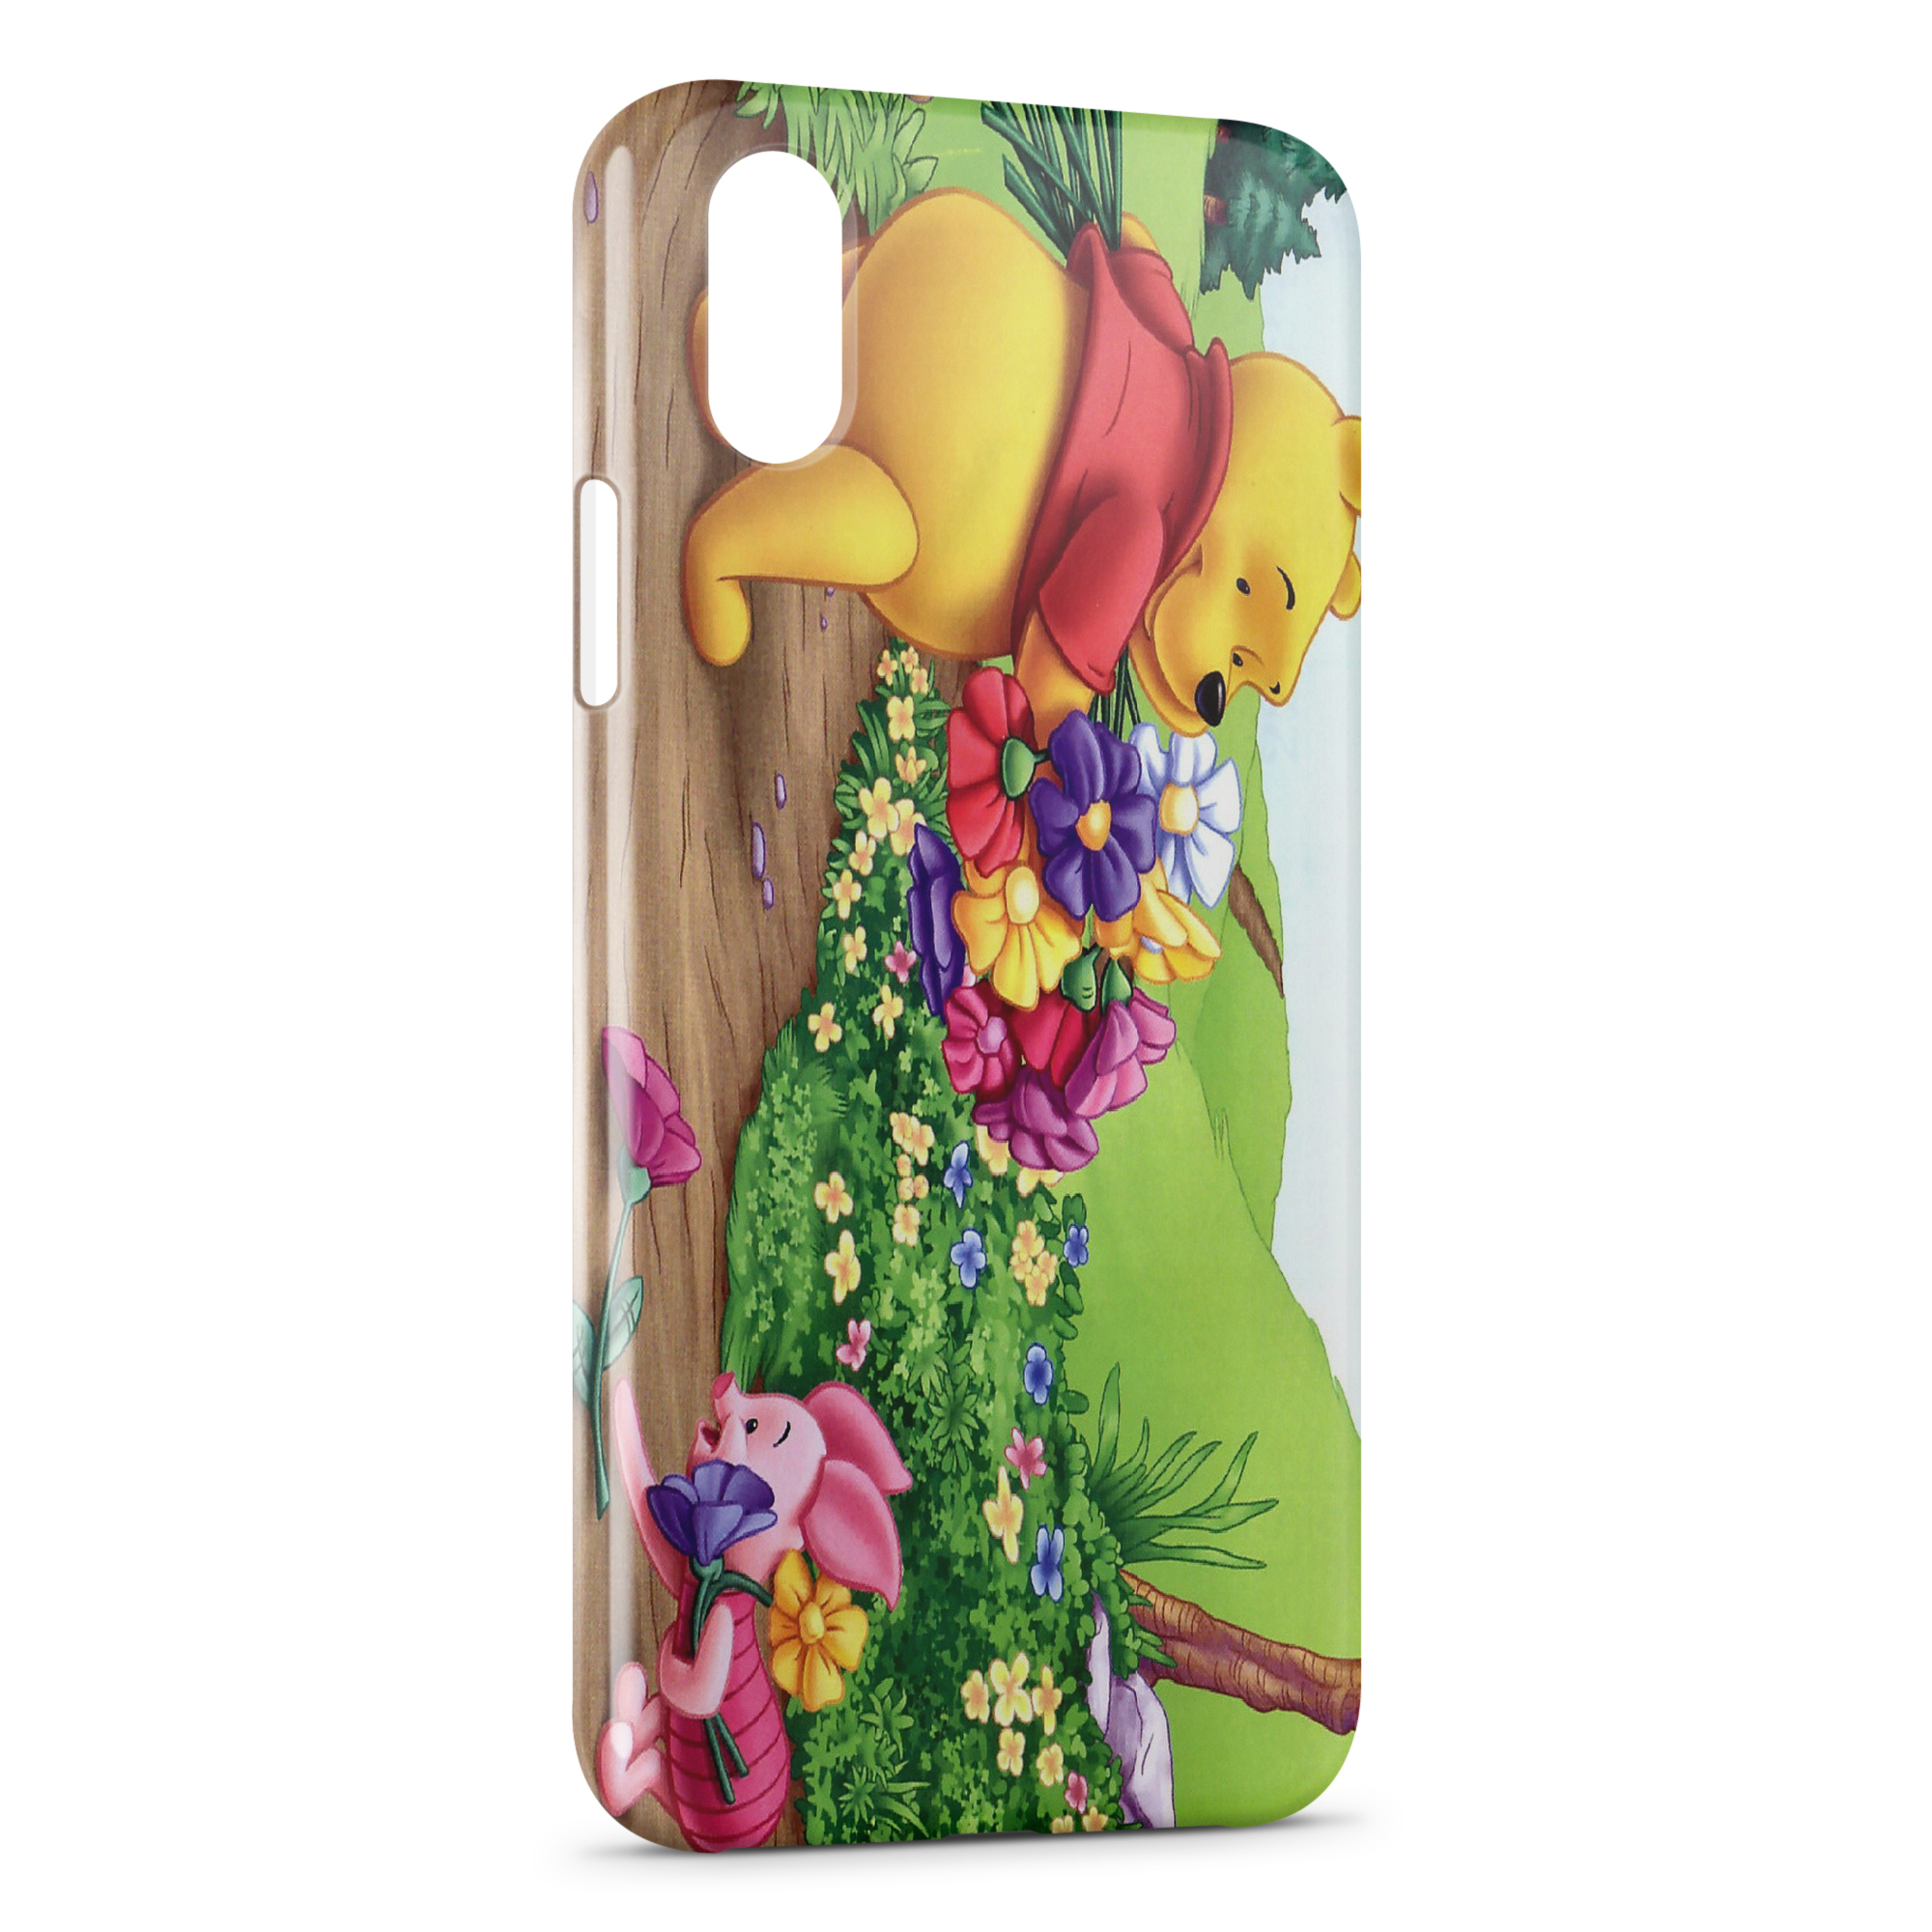 coque iphone xr disney winnie